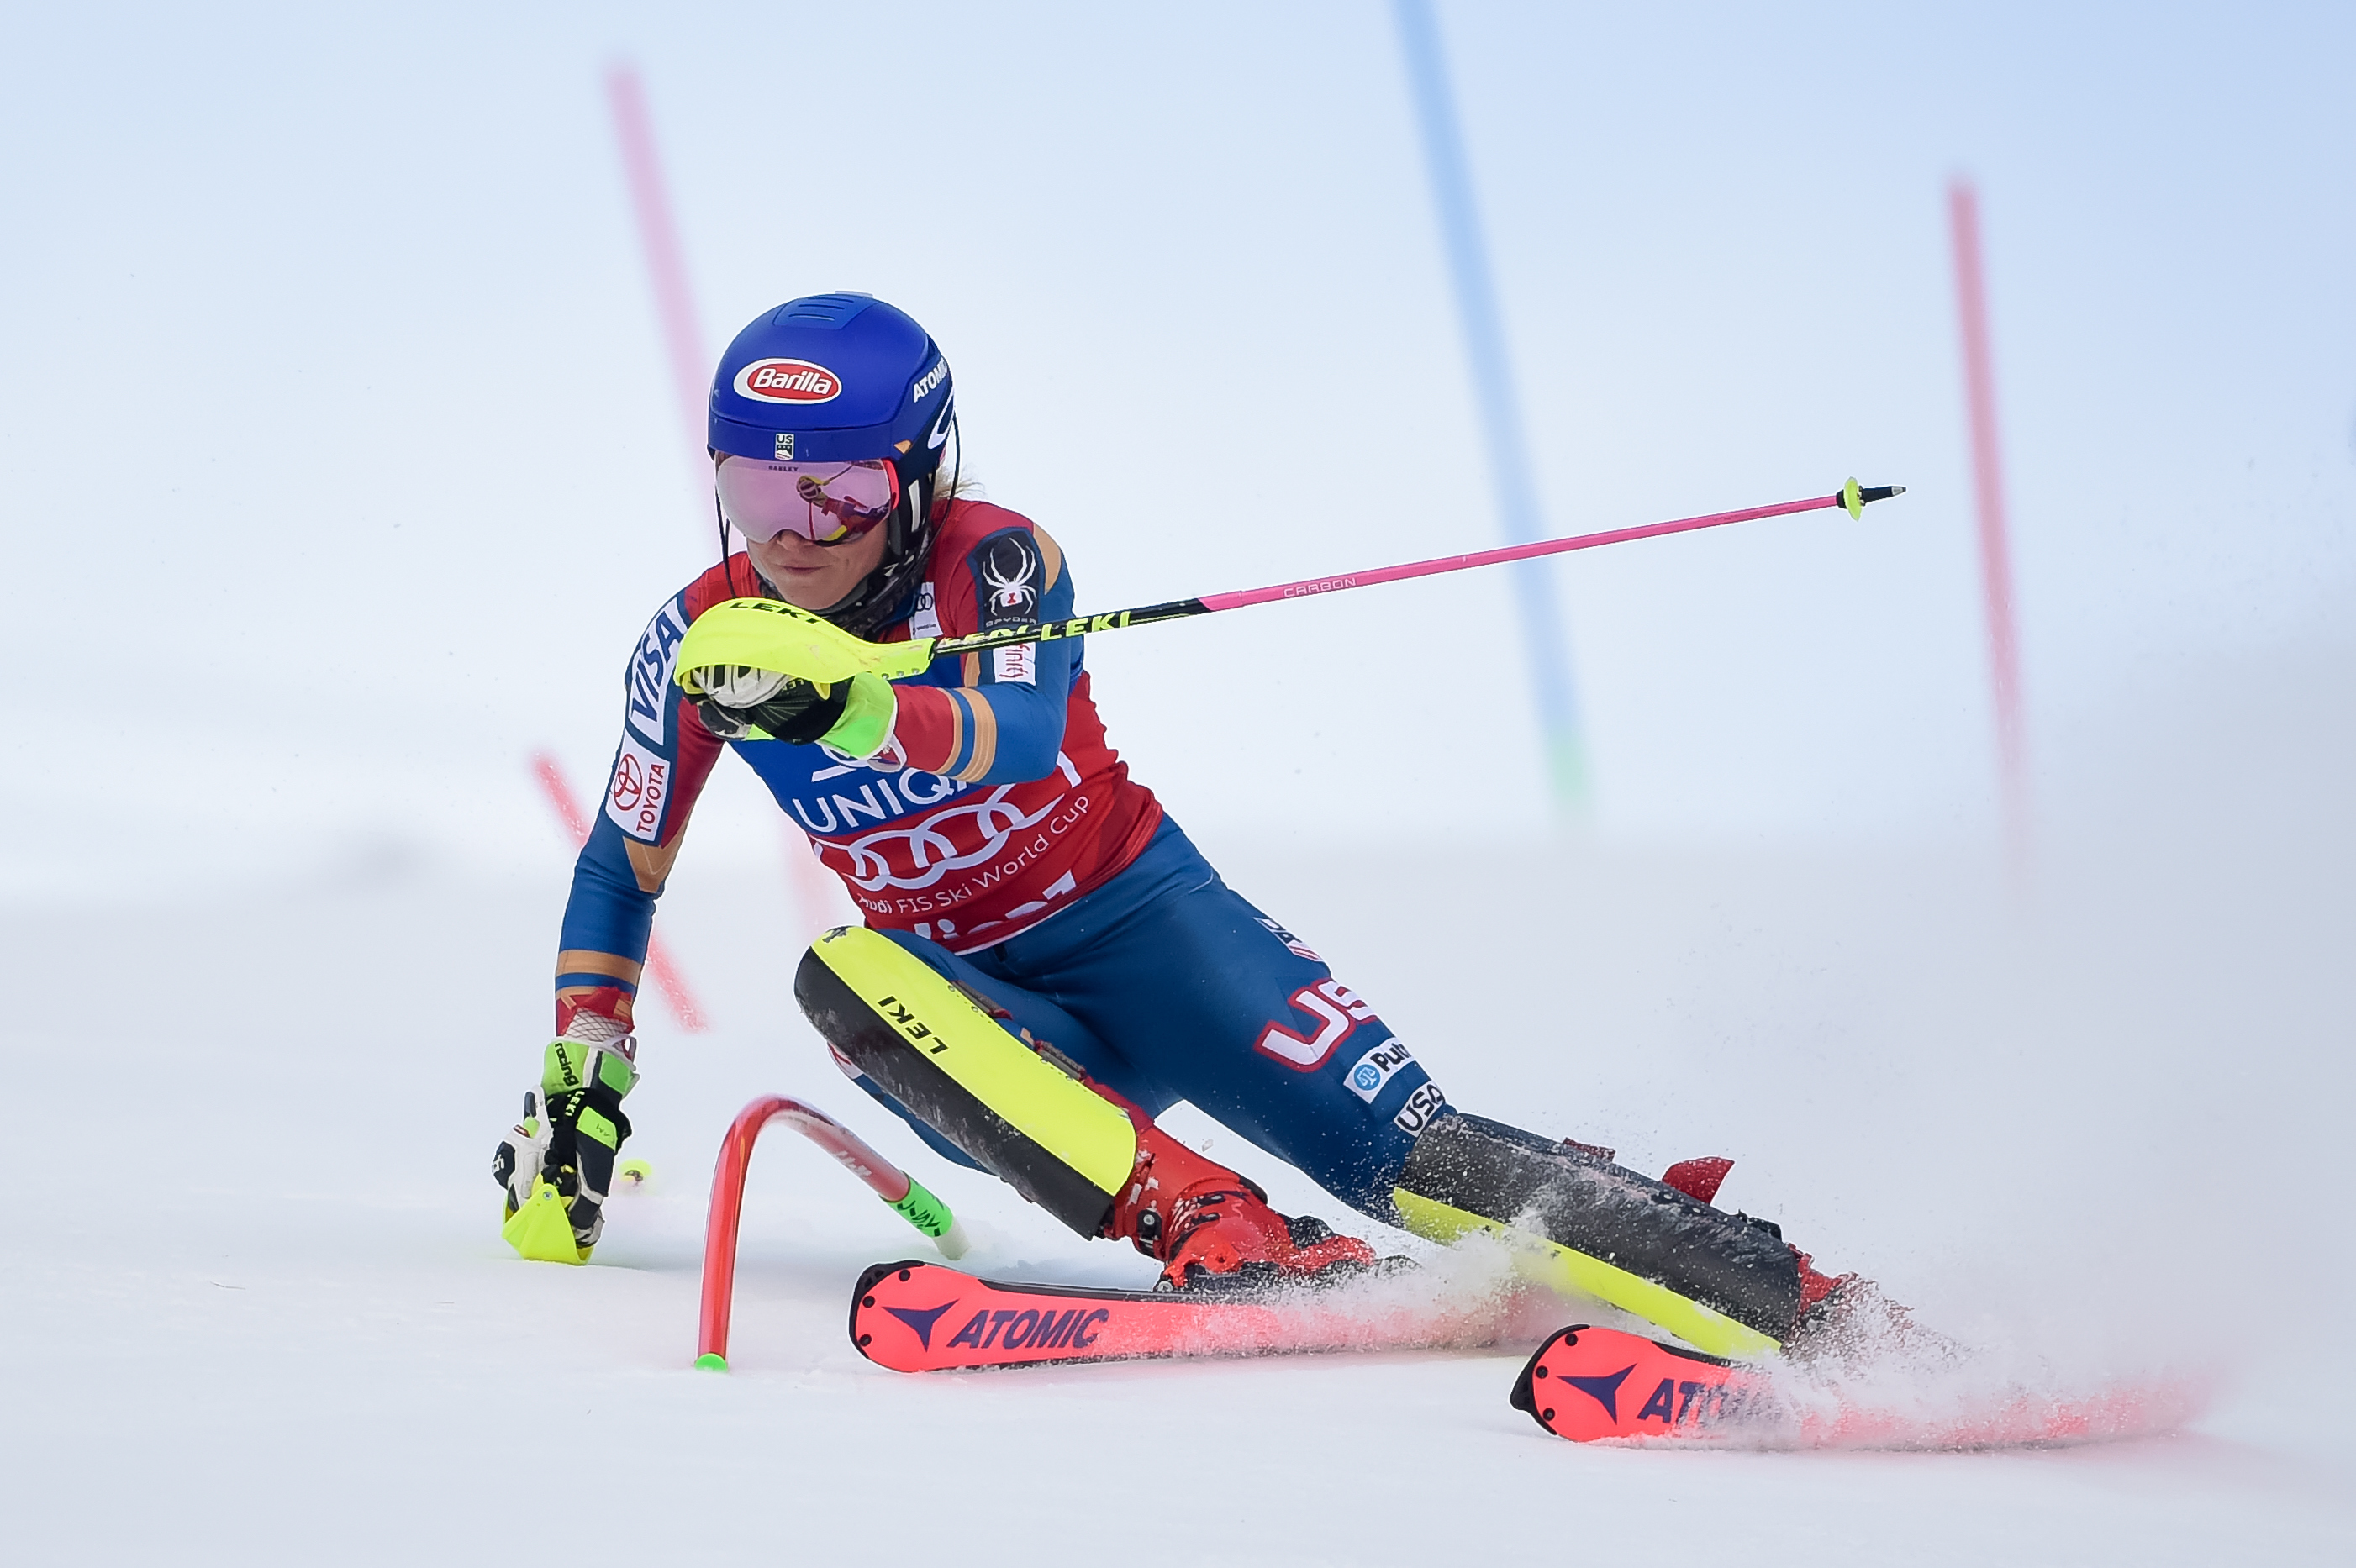 World Cup Victory No 36 For Shiffrin